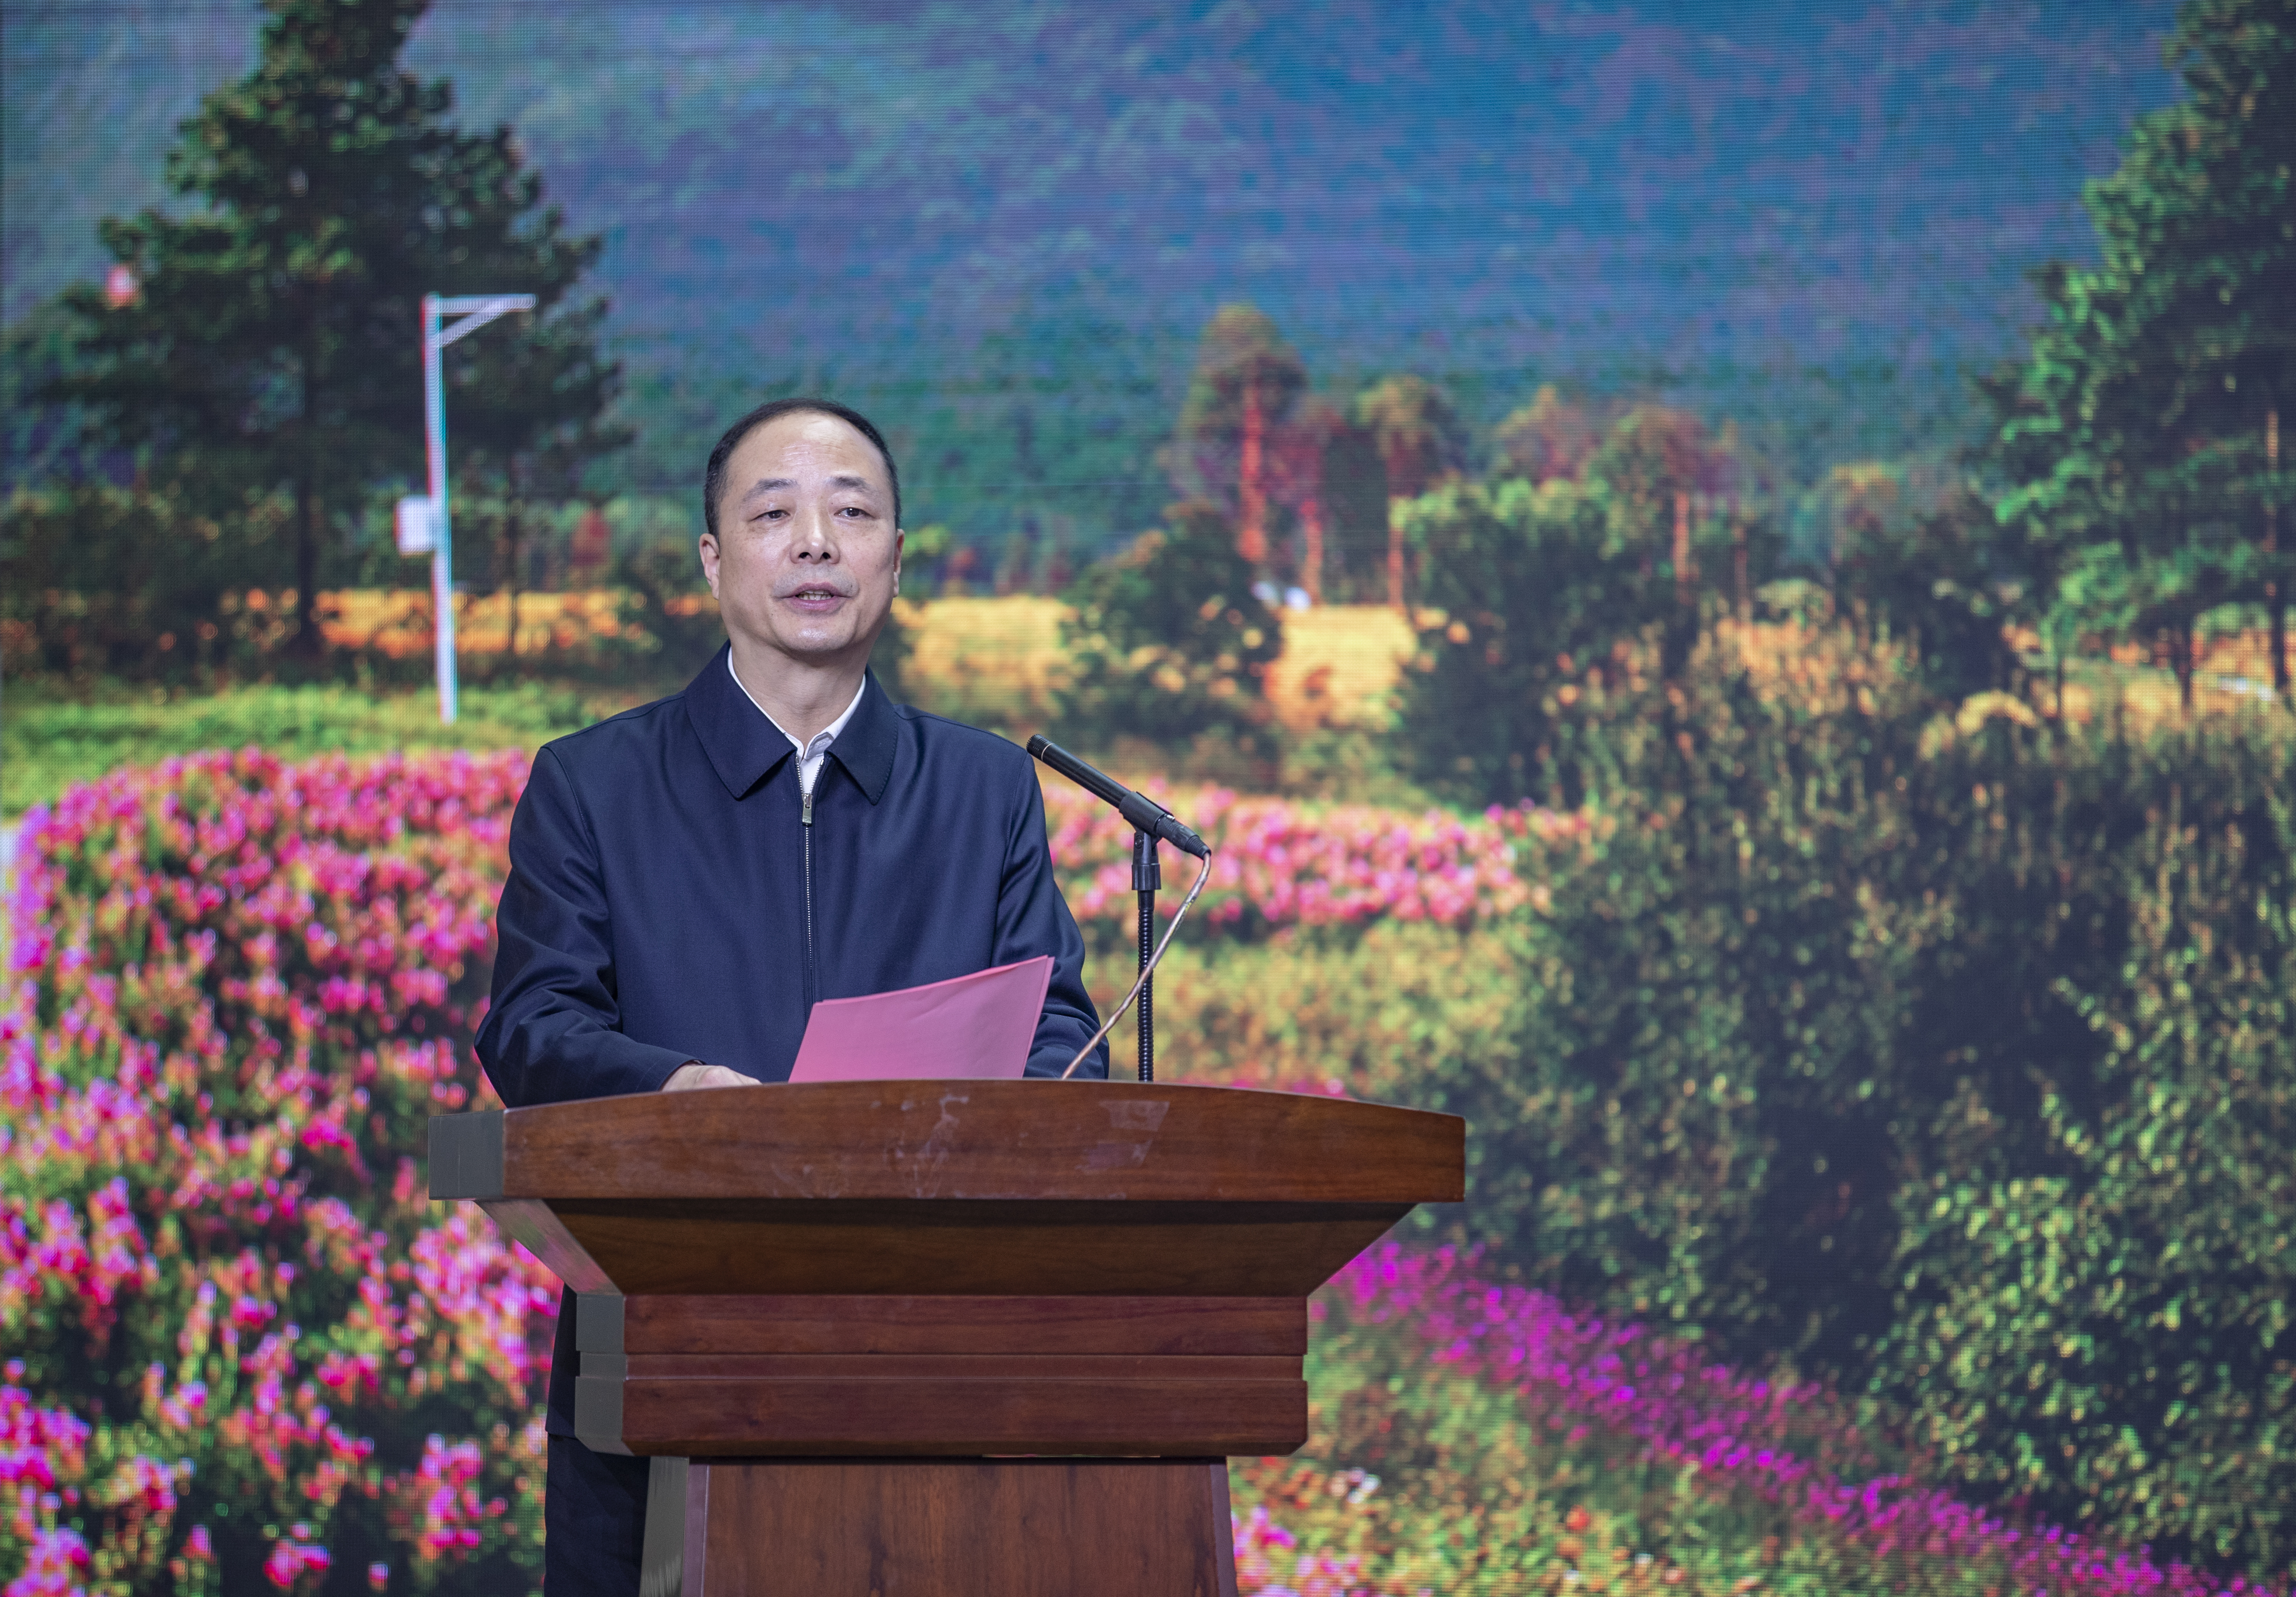 Gongjun has gave a speech in the ceremony.